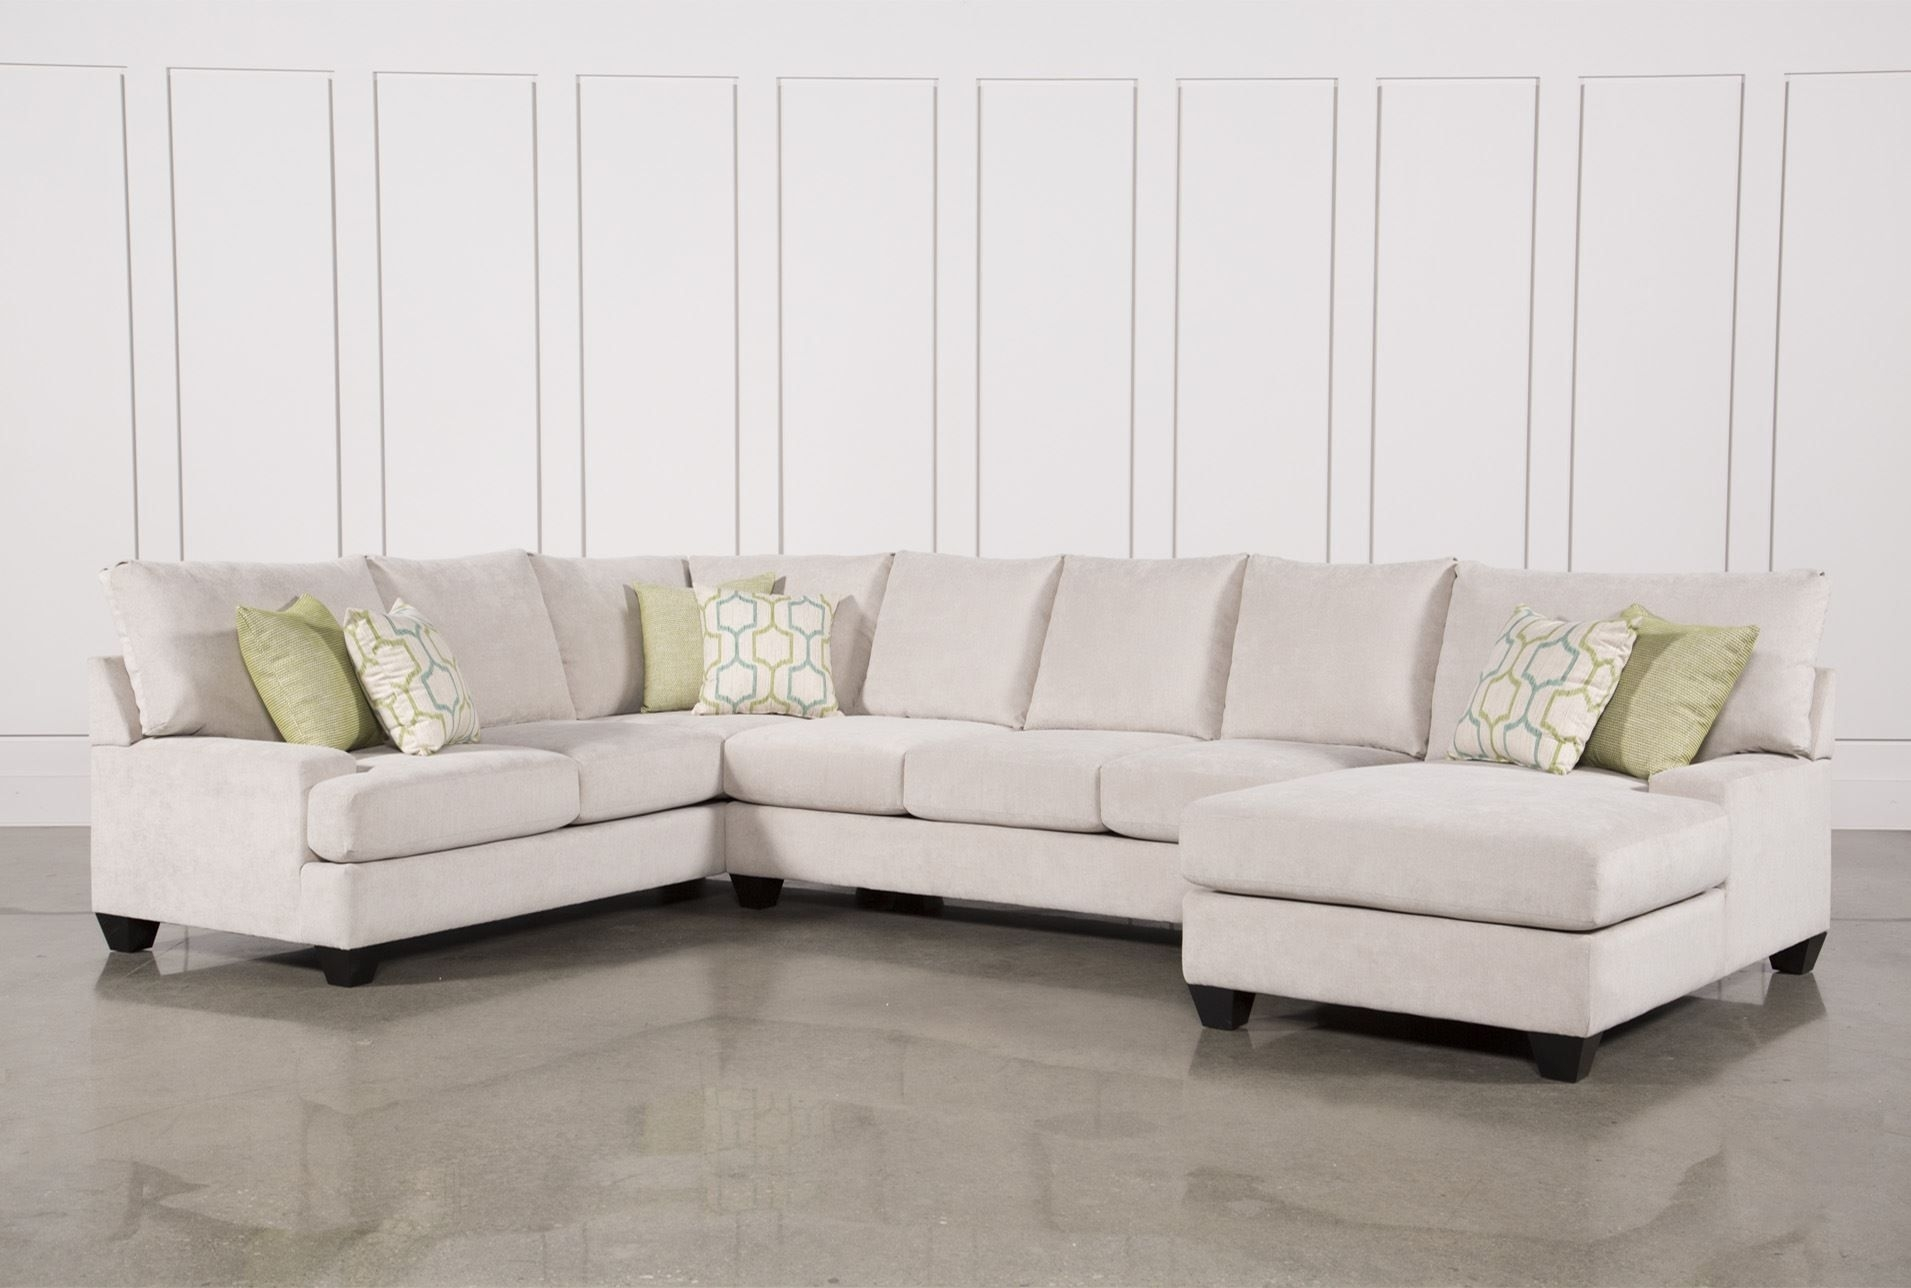 Harper Foam 3 Piece Sectional W/raf Chaise | Family Room | Pinterest Within Mesa Foam 2 Piece Sectionals (View 2 of 25)